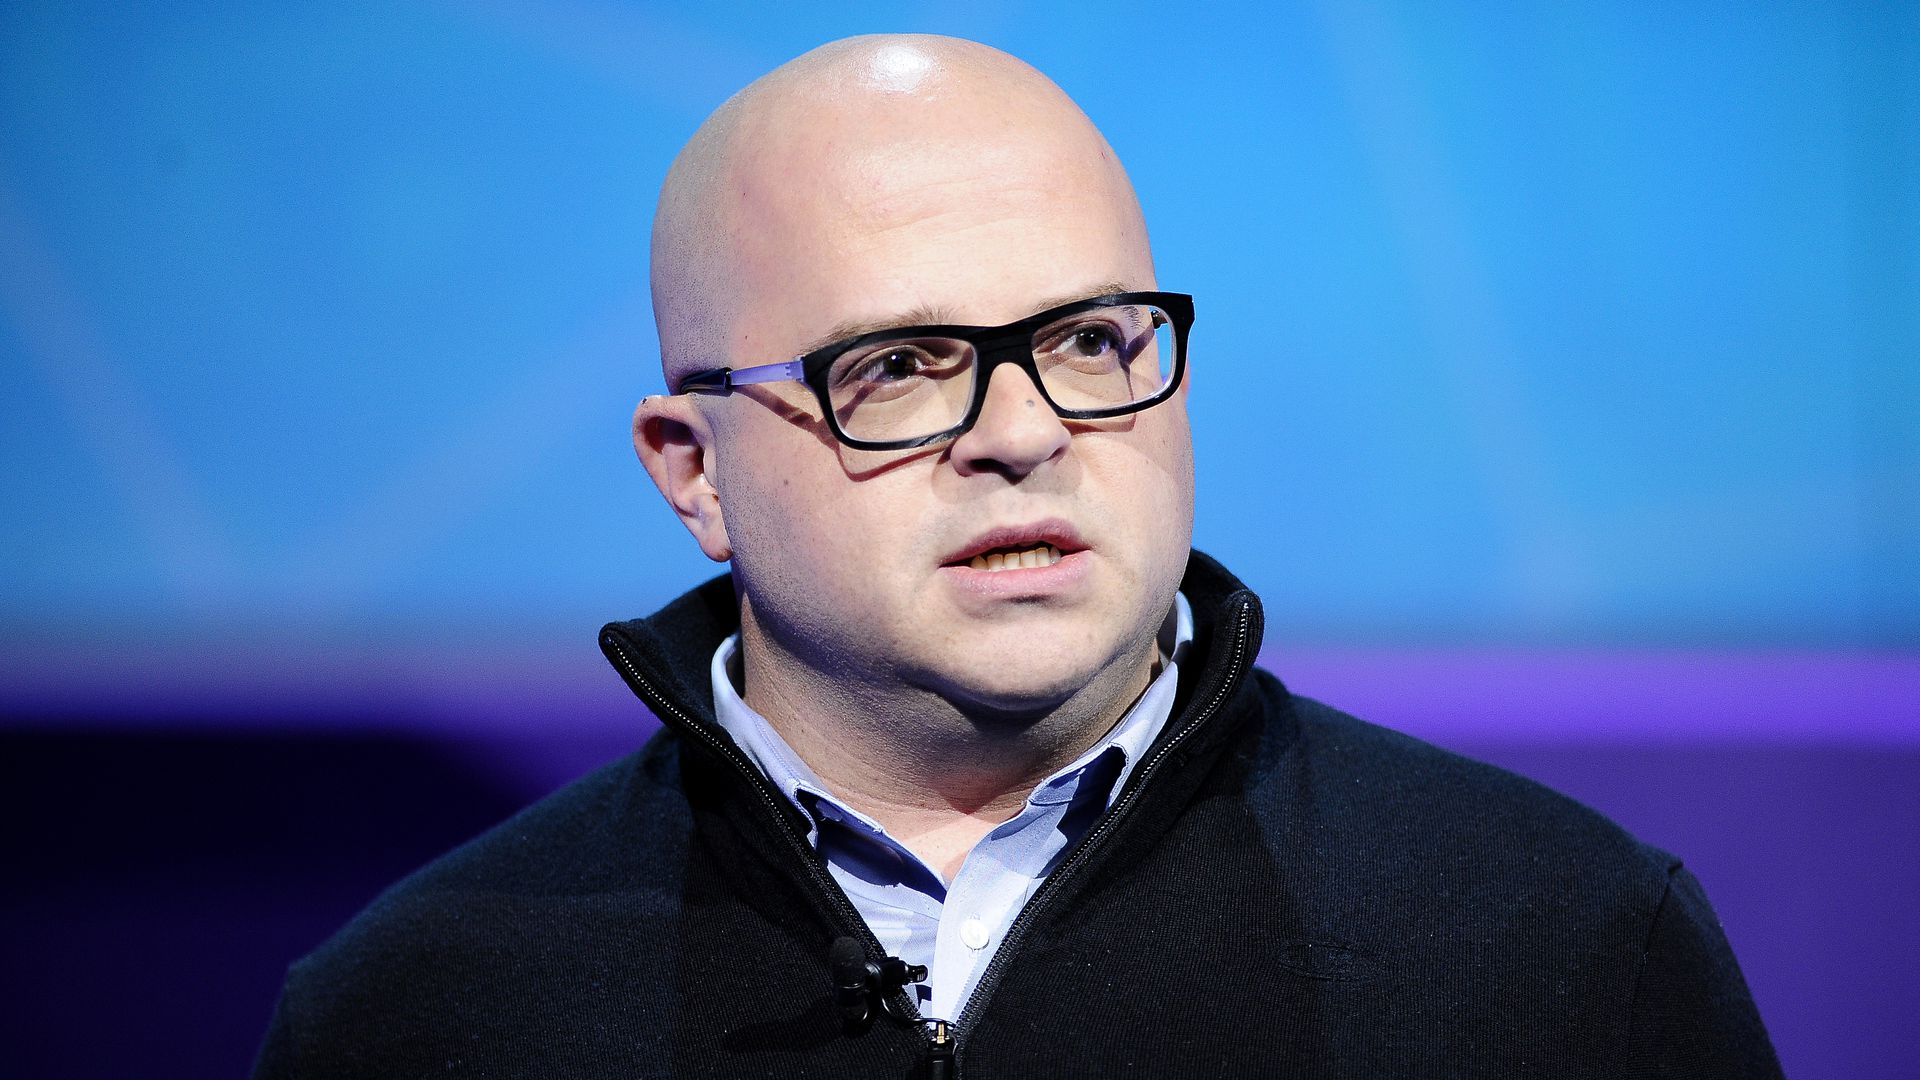 Jeff Lawson, founder, CEO and chairman of Twilio talking on a stage with blue back lighting